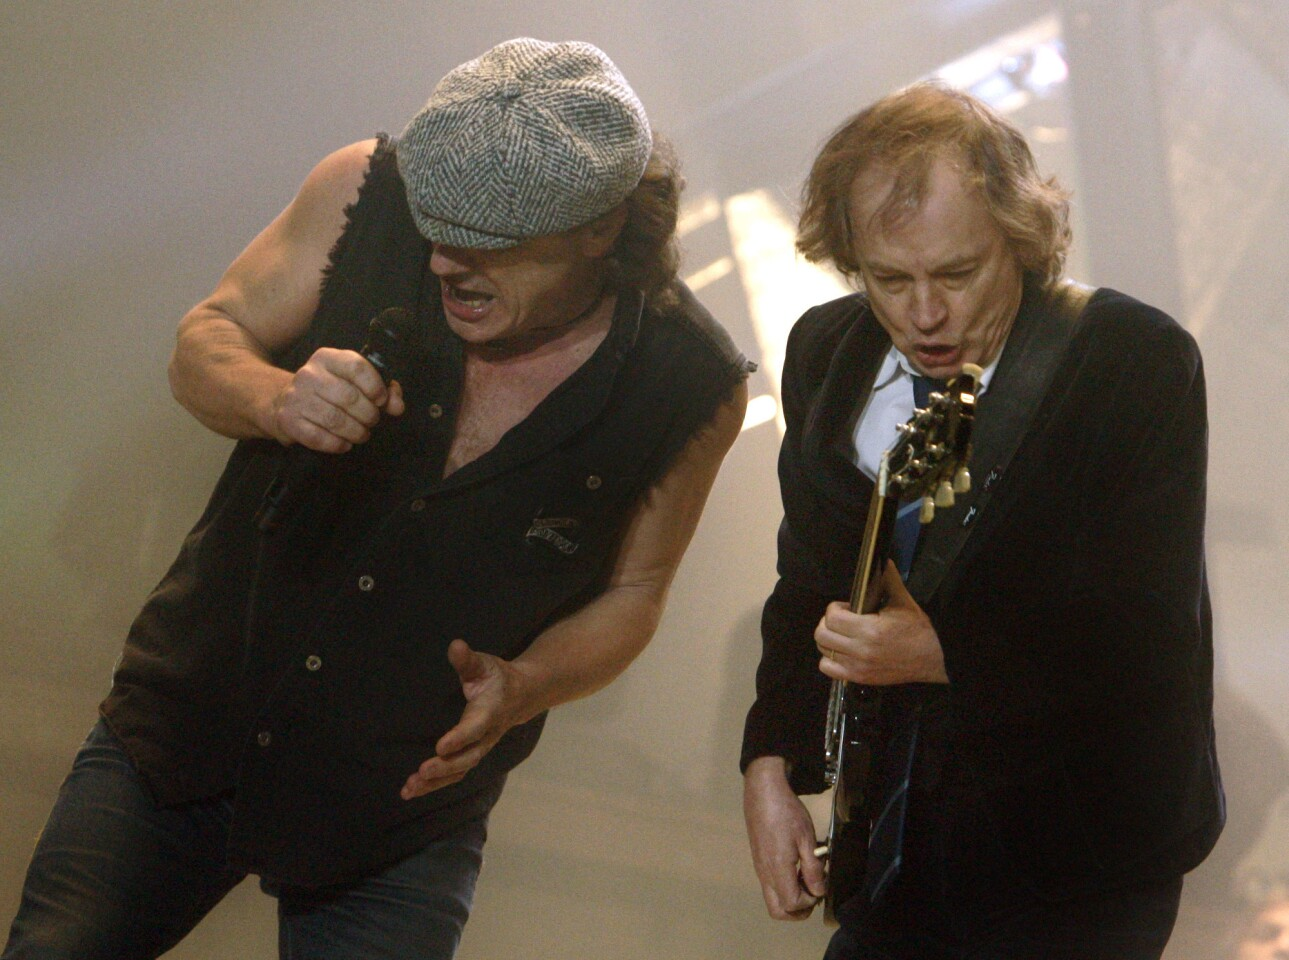 Brian Johnson, left, and Angus Young of AC/DC will perform at the Grammys.